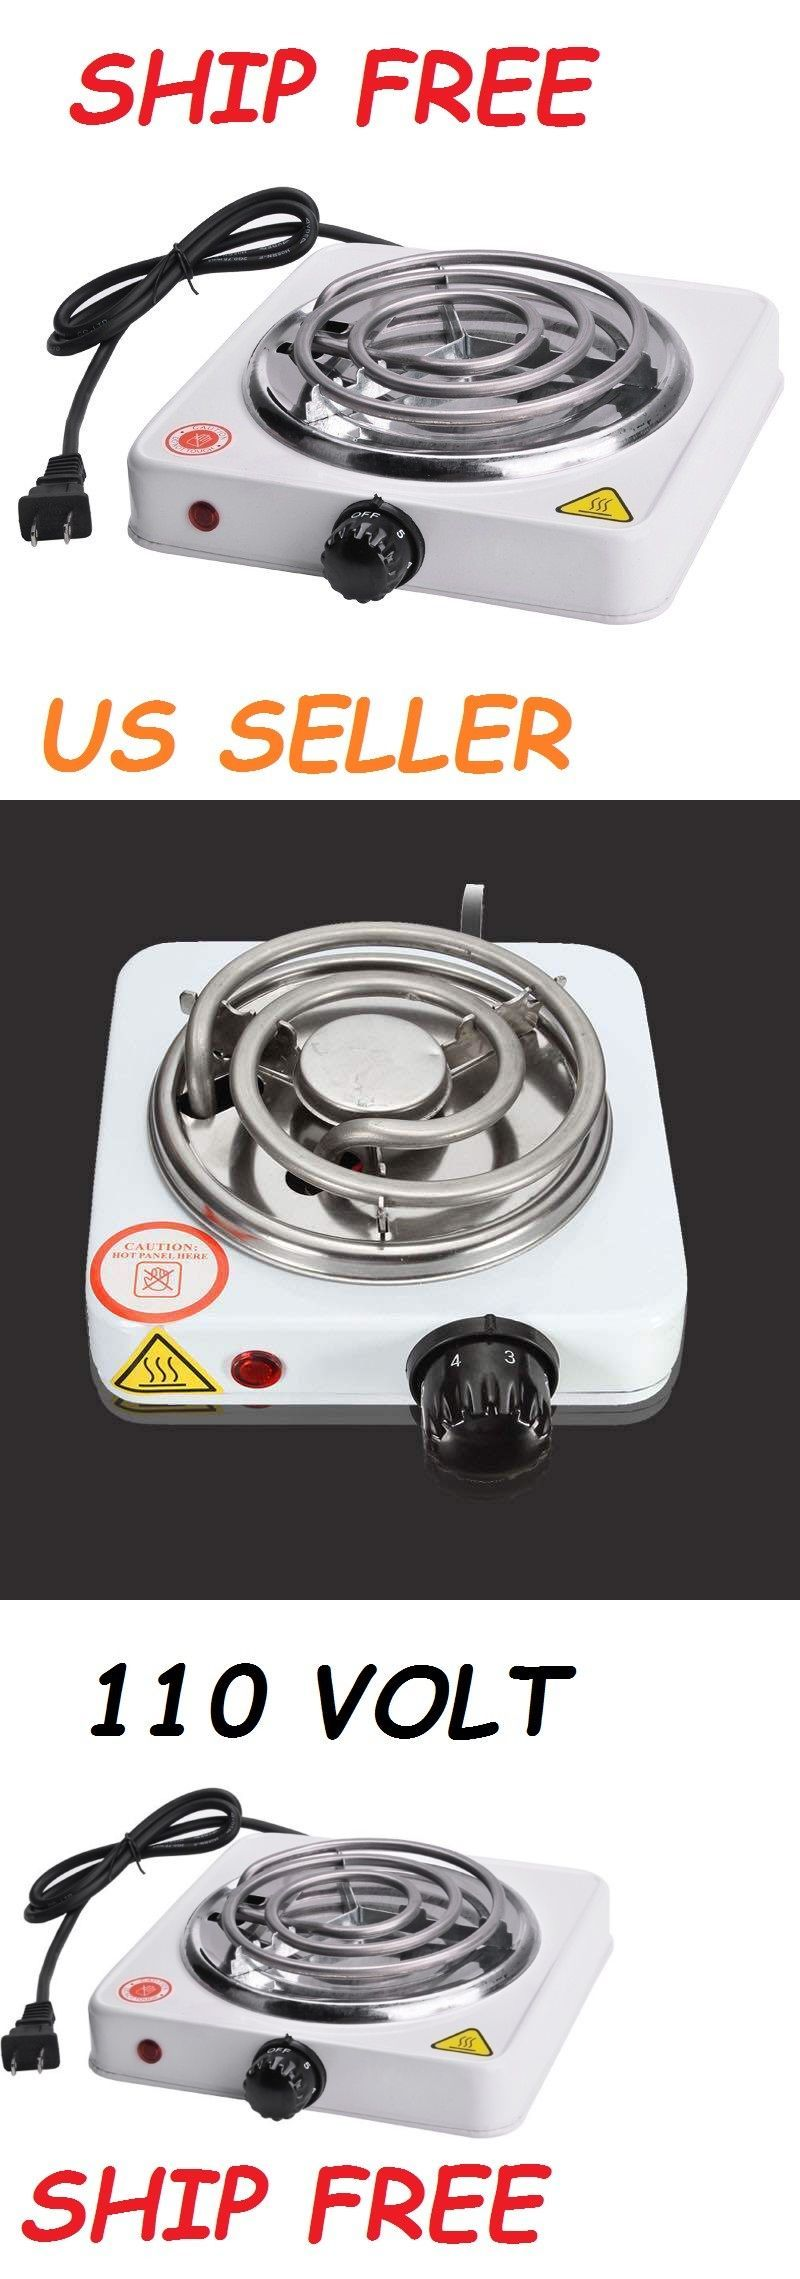 Burners And Hot Plates 177751 Portable Single Electric Burner Hot Plate Stove Dorm Rv Travel Cook Counter Top Buy Hot Plates Single Burner Stove Dorm Style